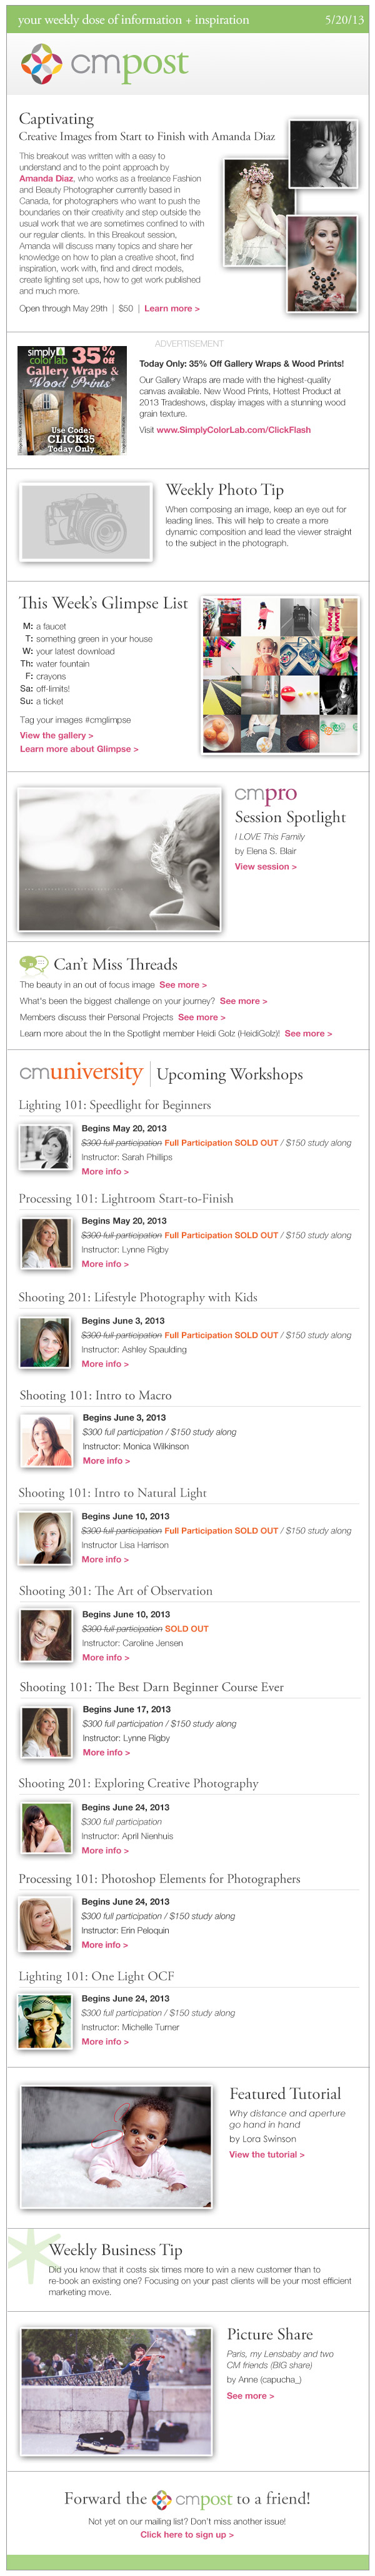 creating captivating images, personal projects, and featured photo sessions